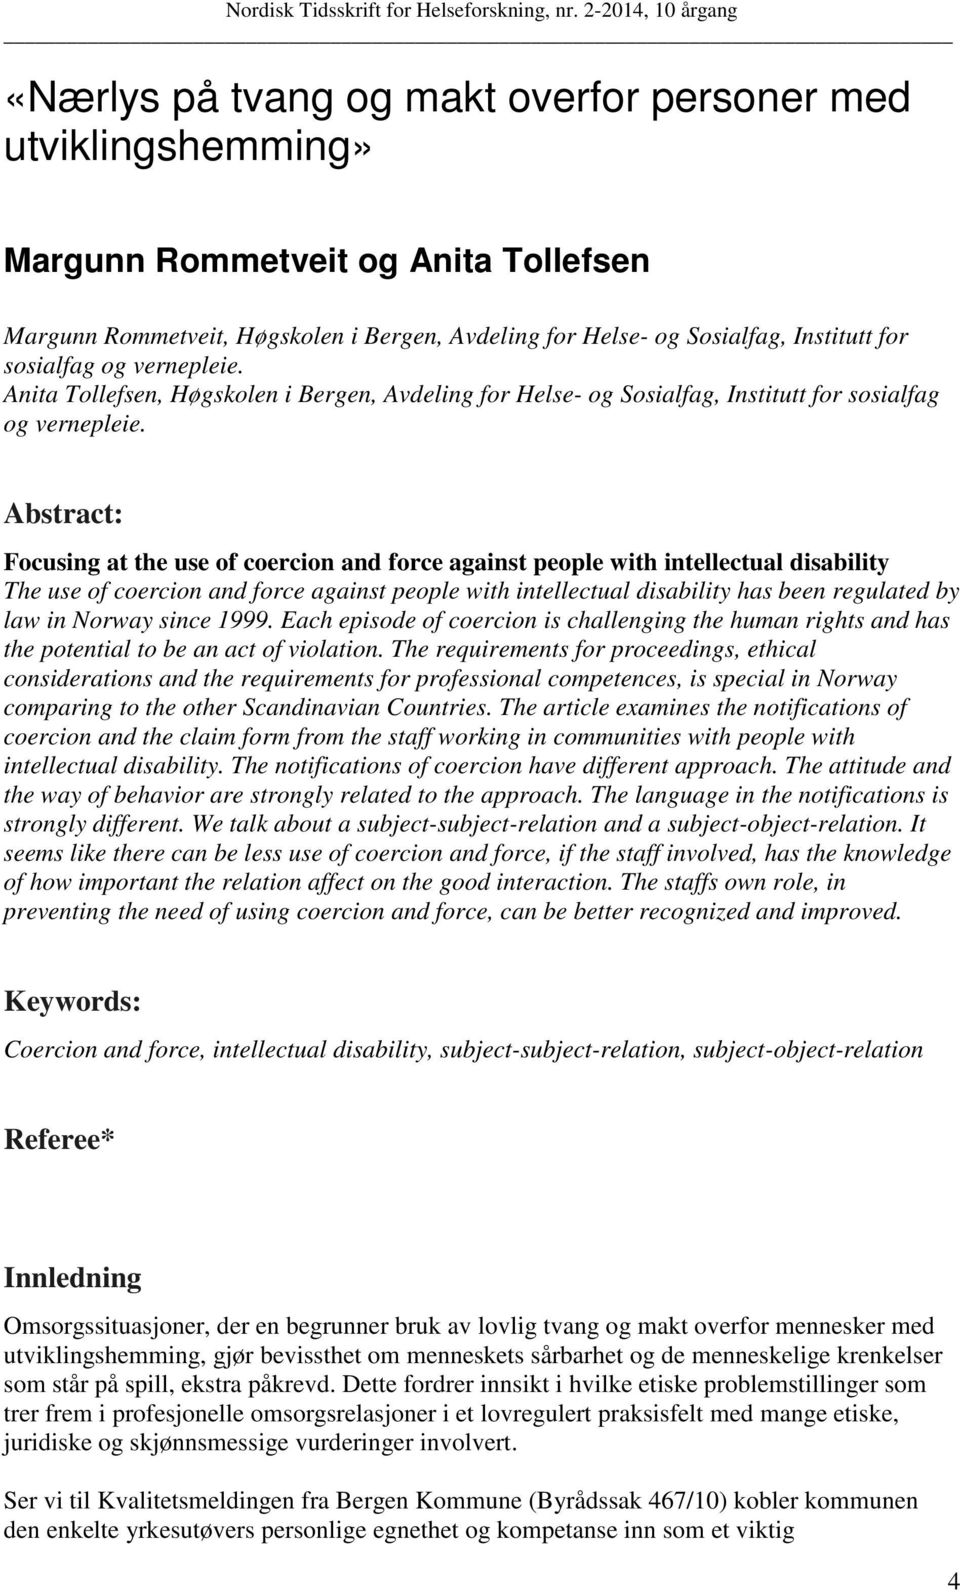 Abstract: Focusing at the use of coercion and force against people with intellectual disability The use of coercion and force against people with intellectual disability has been regulated by law in